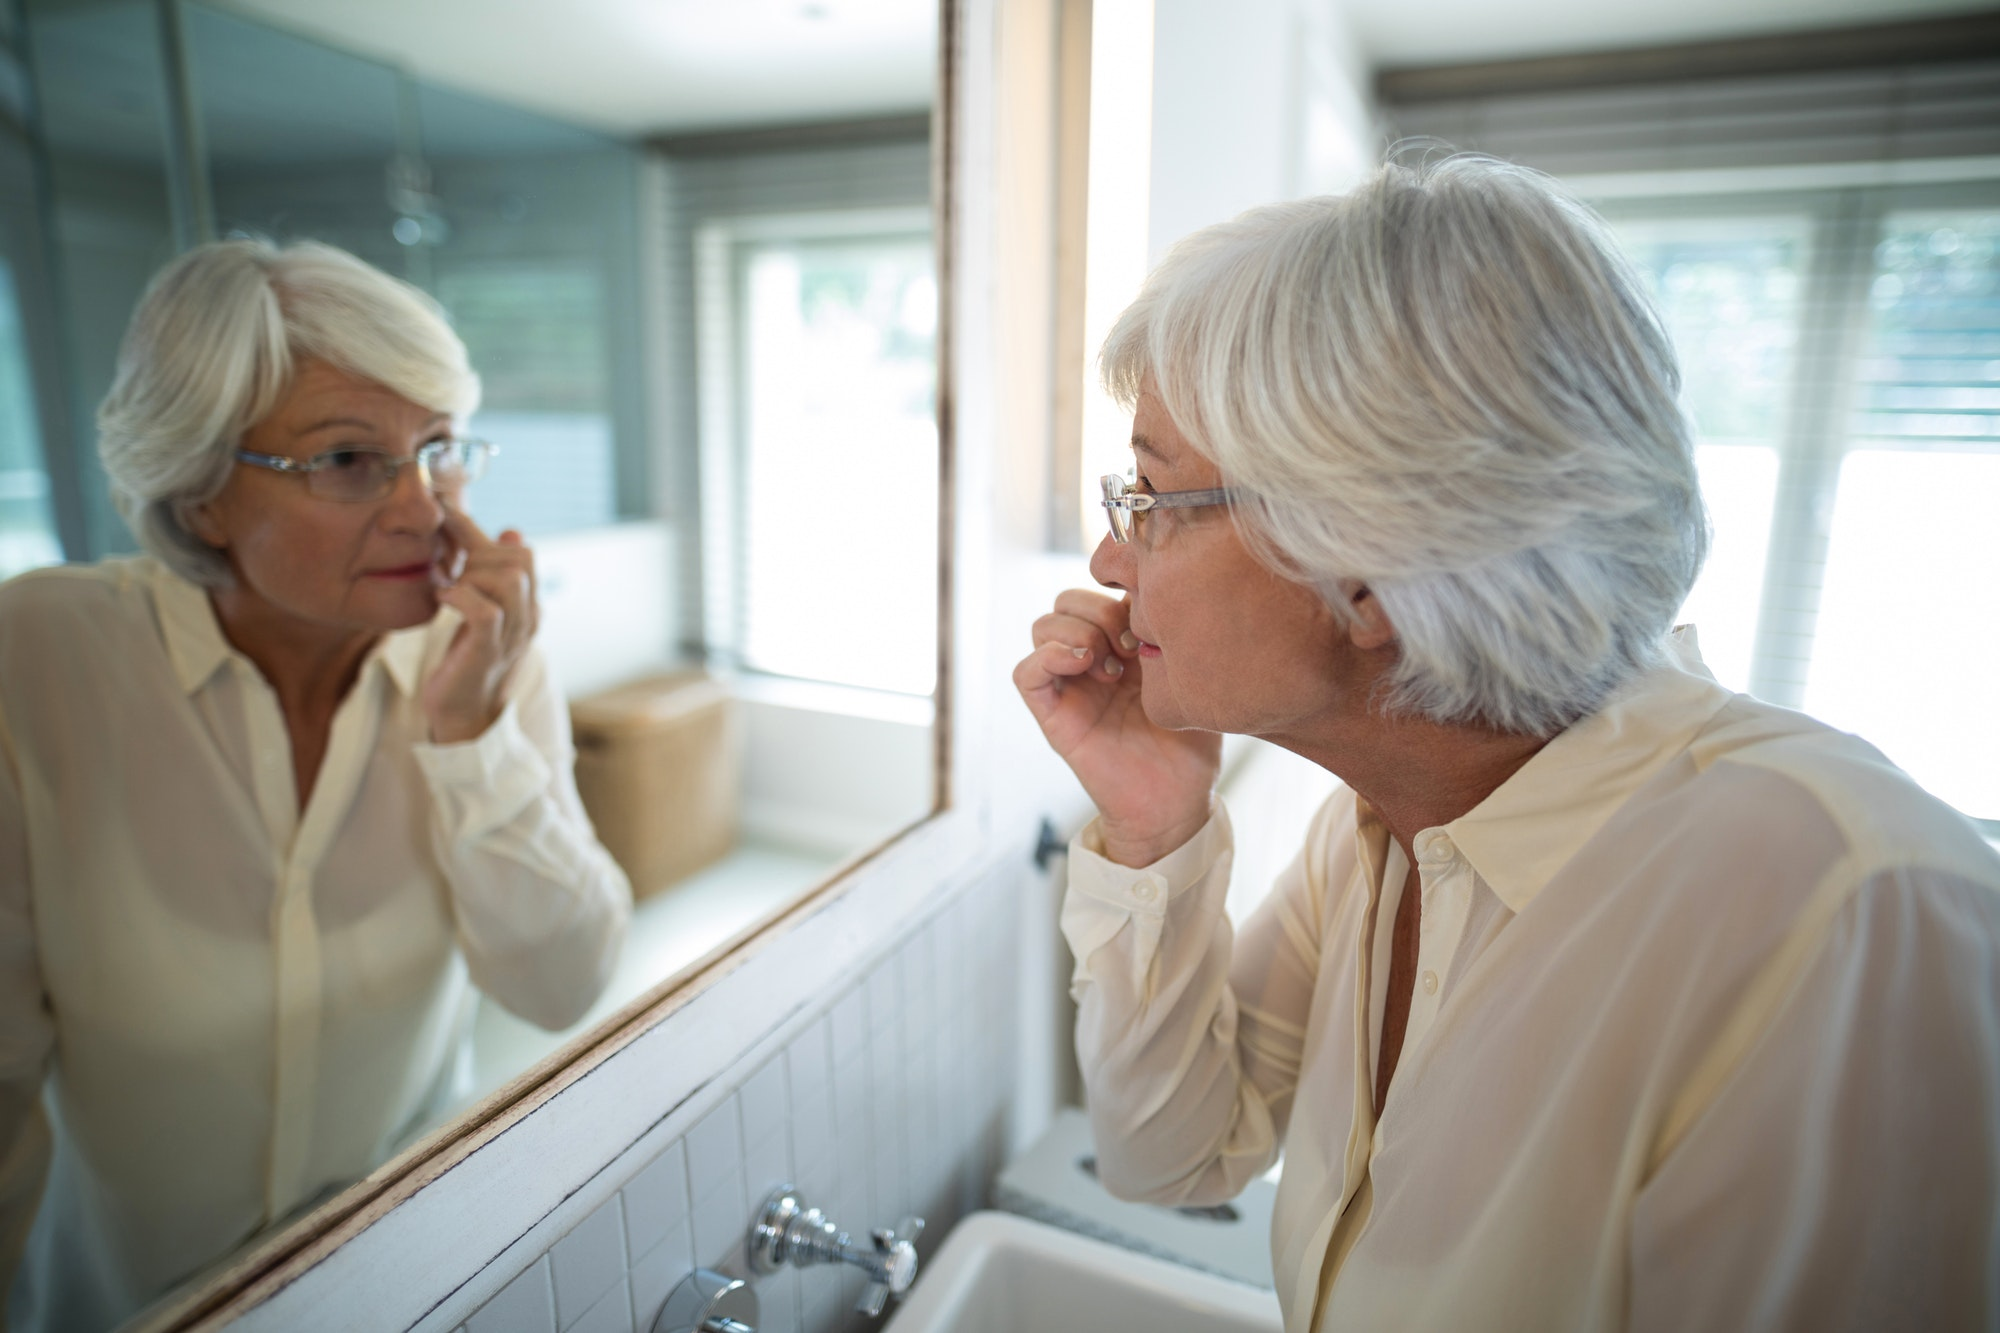 Senior woman checking her skin in mirror